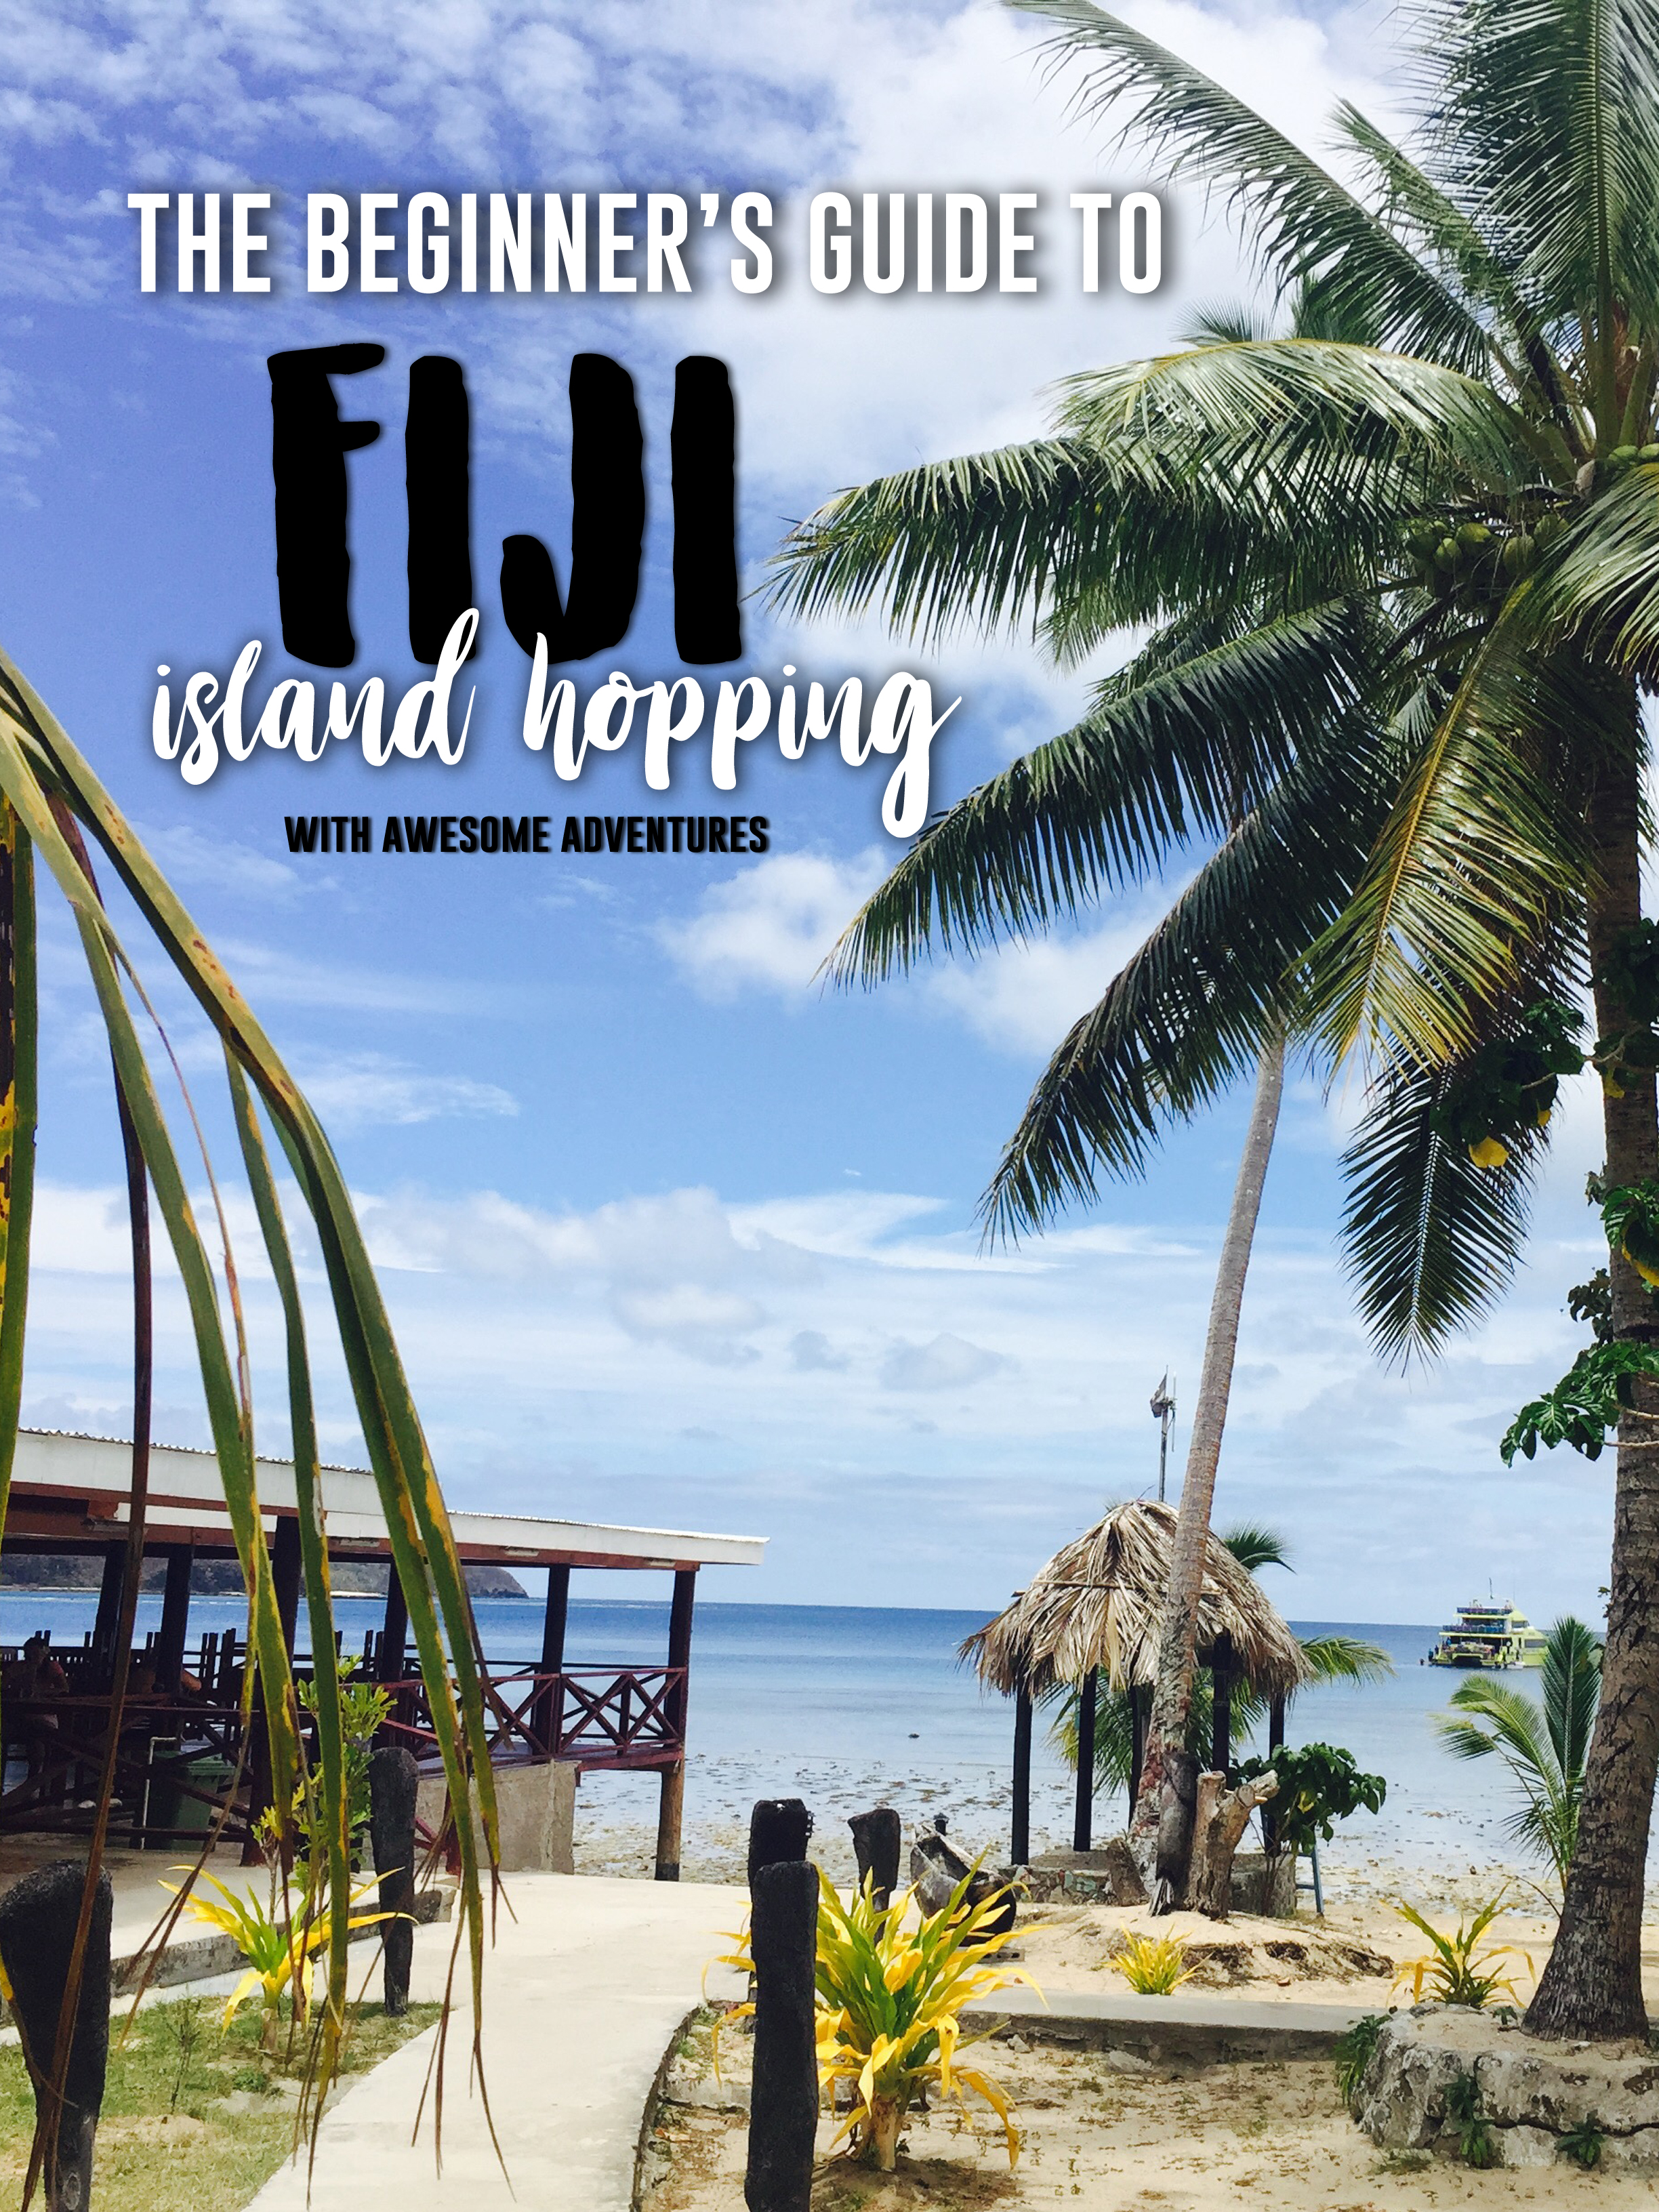 The Beginner's Guide to Fiji Island Hopping with Awesome Adventures